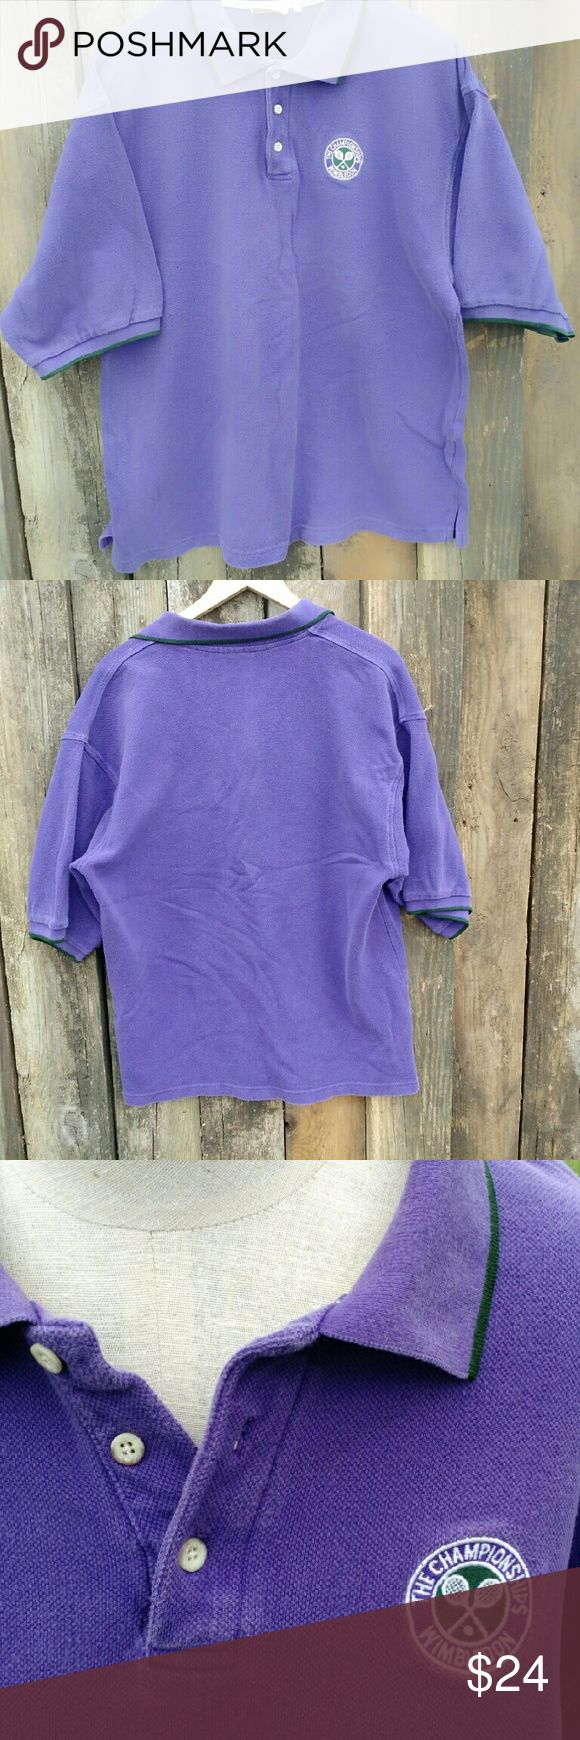 """Wimbledon XXL Tennis Embroidered Polo Shirt True shade of Wimbledon purple, this 100% cotton pique short sleeve shirt comes from the Wimbledon museum in England. With the official embroidered """"The Championship"""" design on the chest, this top's a classic. Wimbledon Tops"""